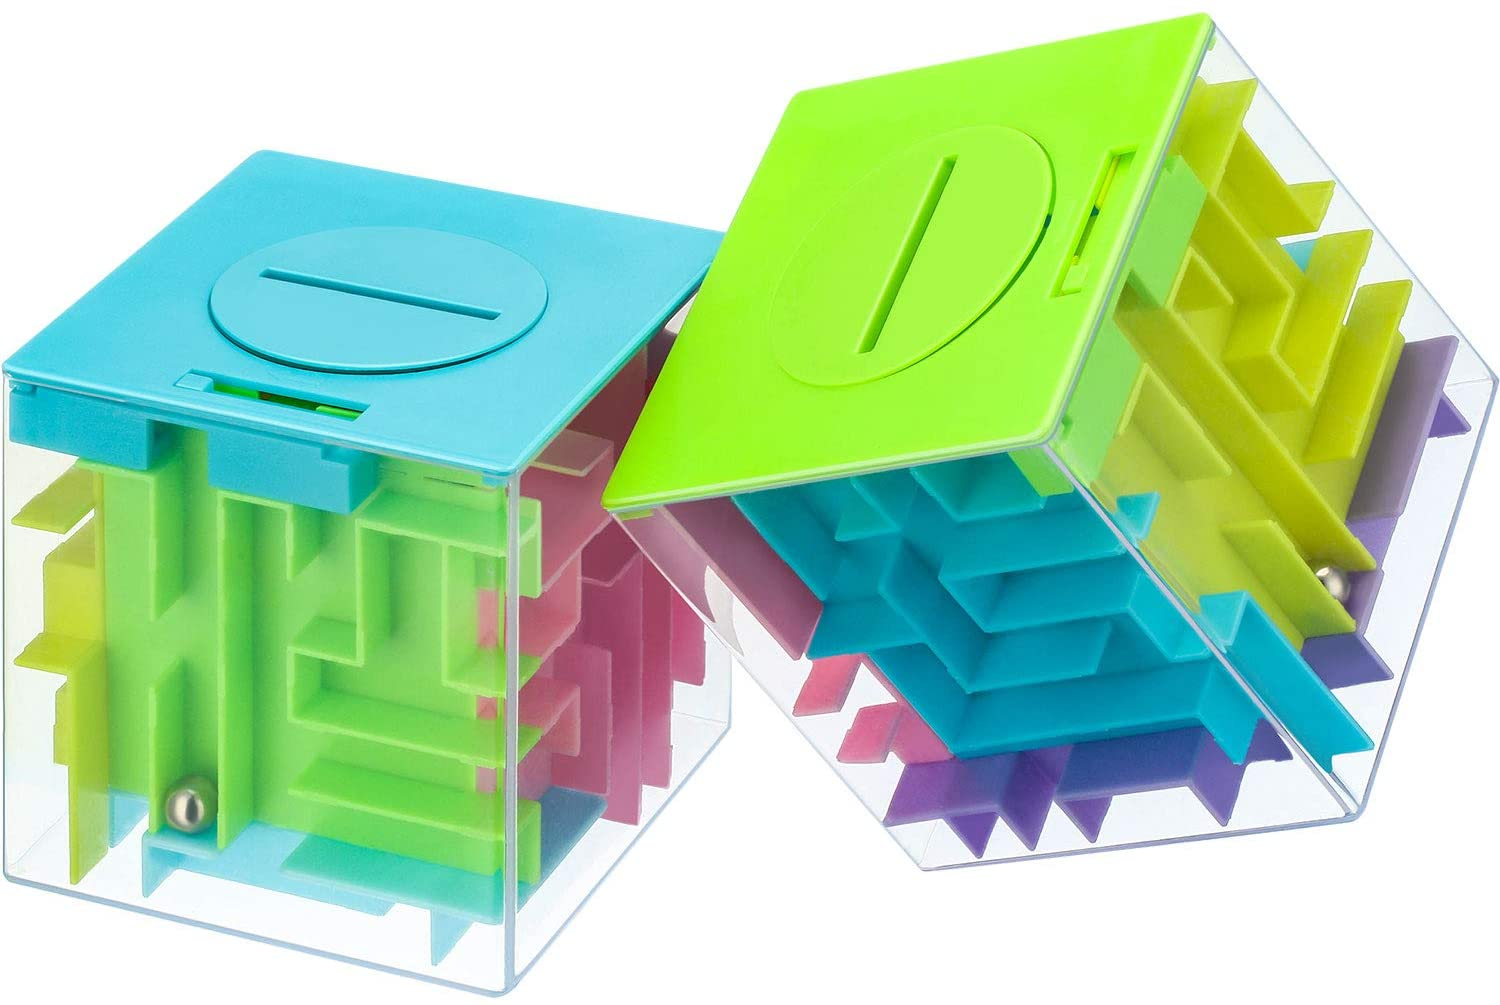 2 Pieces Money Maze Puzzle Box Puzzle Money Holder Box, Fun Brain Teasers for Kids and Adults Unique Way to Give Birthday or Christmas Supplies